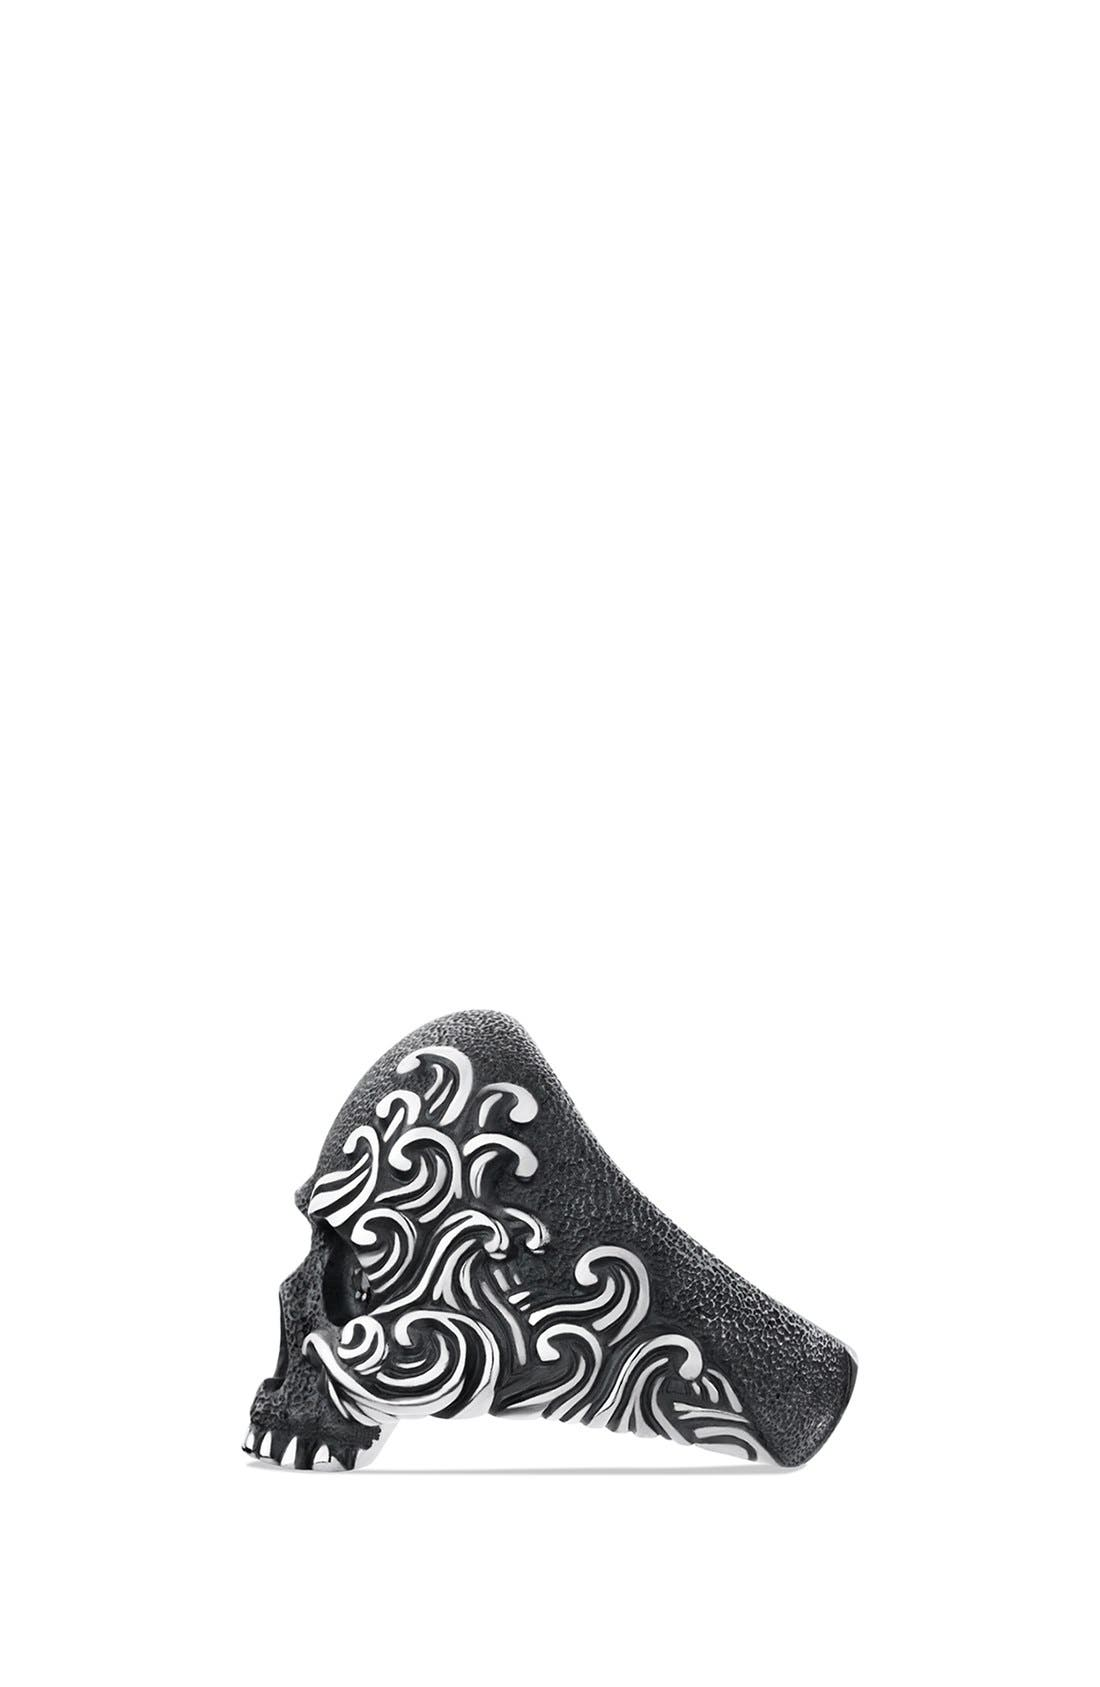 'Waves' Large Skull Ring with Black Diamonds,                             Alternate thumbnail 2, color,                             Black Diamond